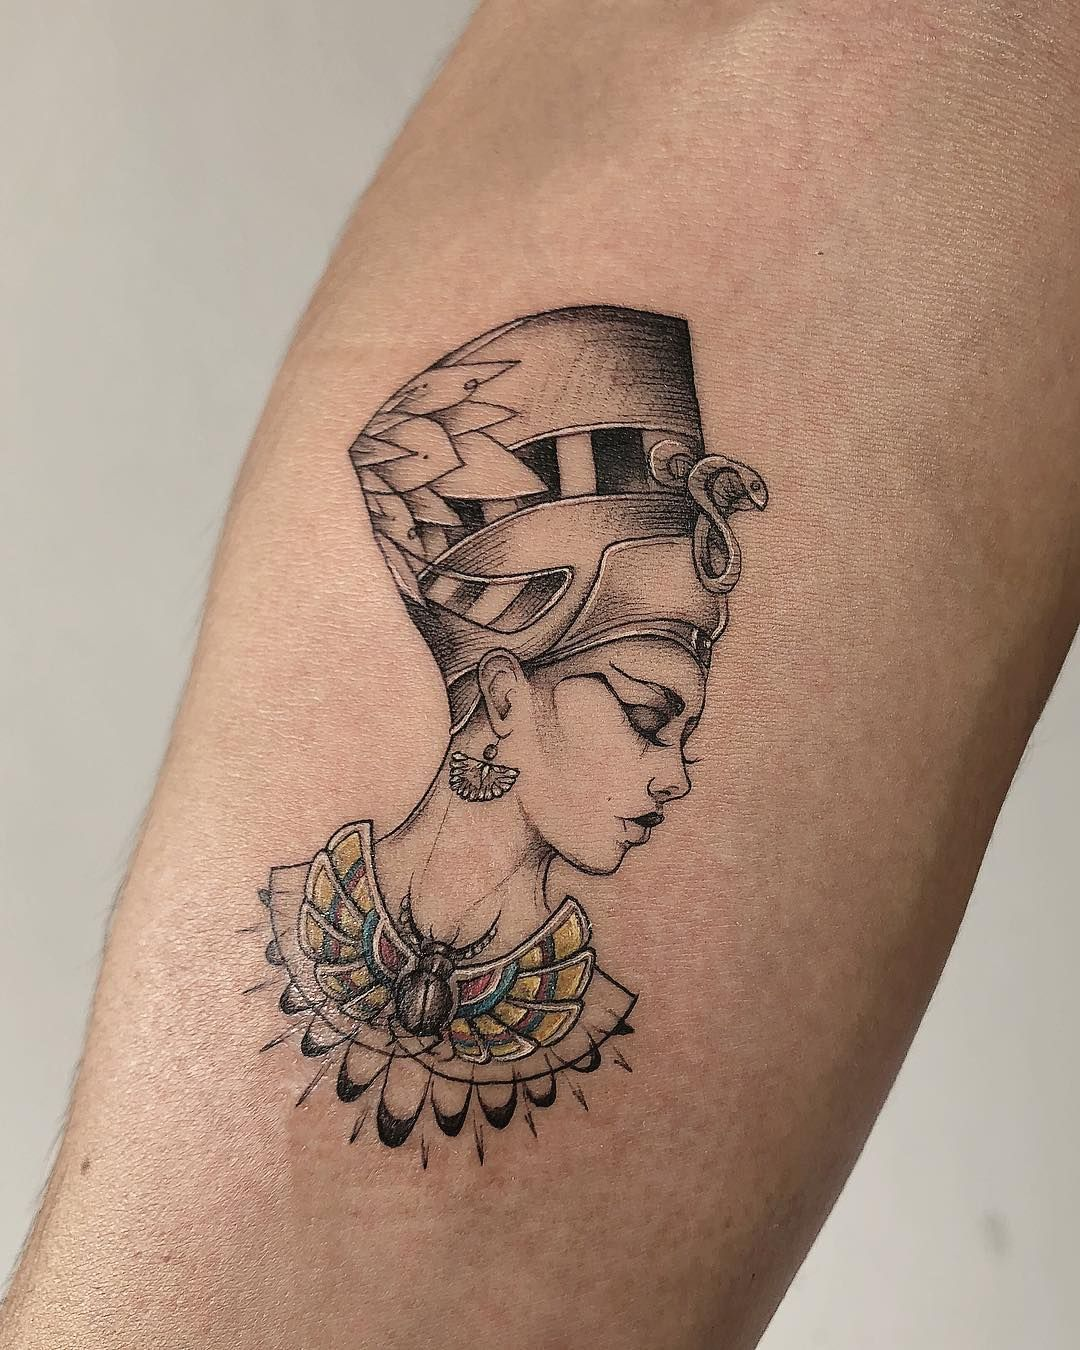 Small Egyptian Tattoos For Females : small, egyptian, tattoos, females, Tattoo, Sleeve, Tattoos, Women,, Nefertiti, Tattoo,